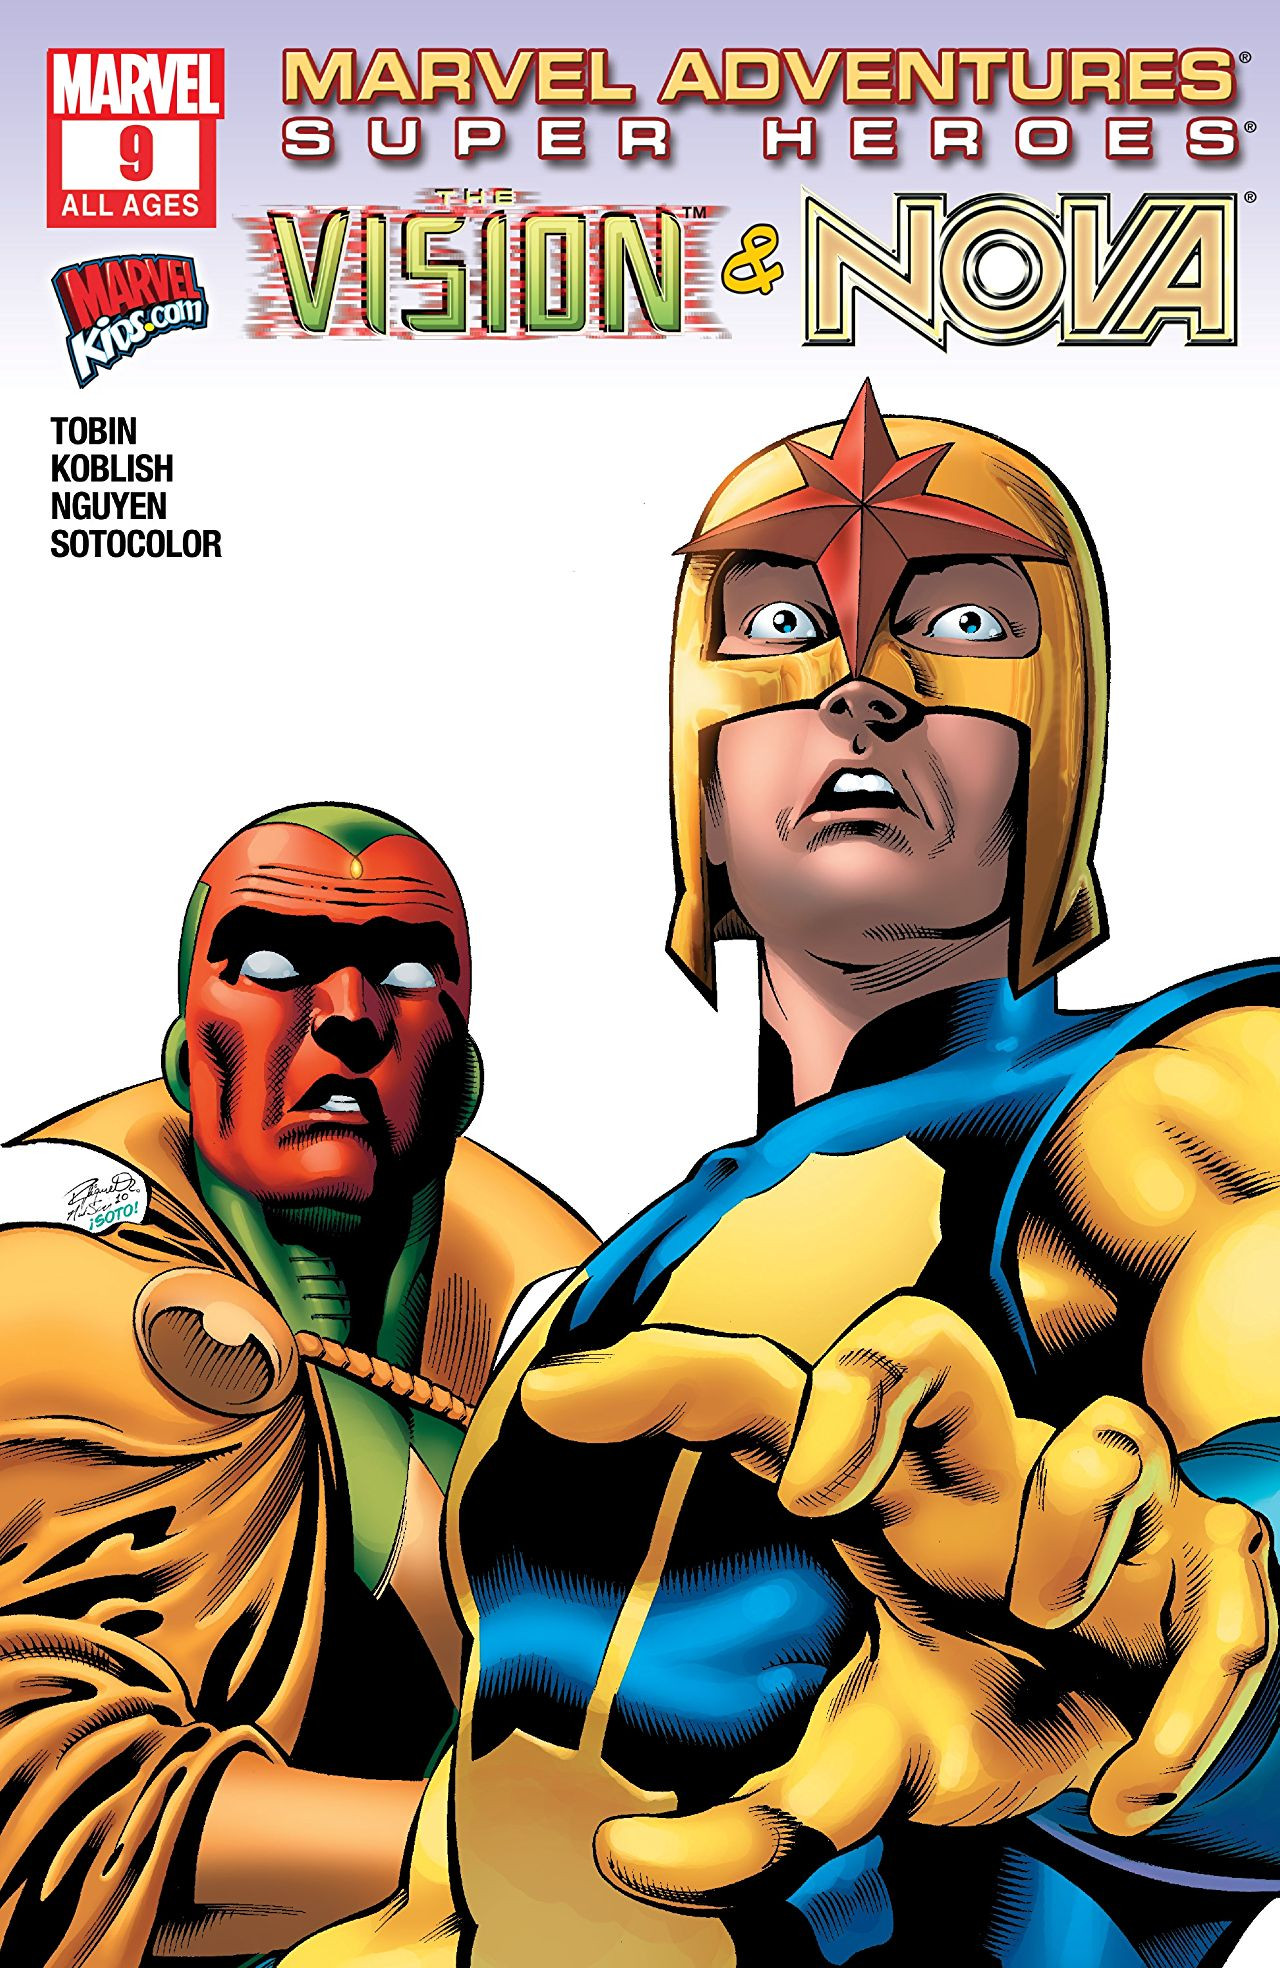 Marvel Adventures: Super Heroes Vol 2 9